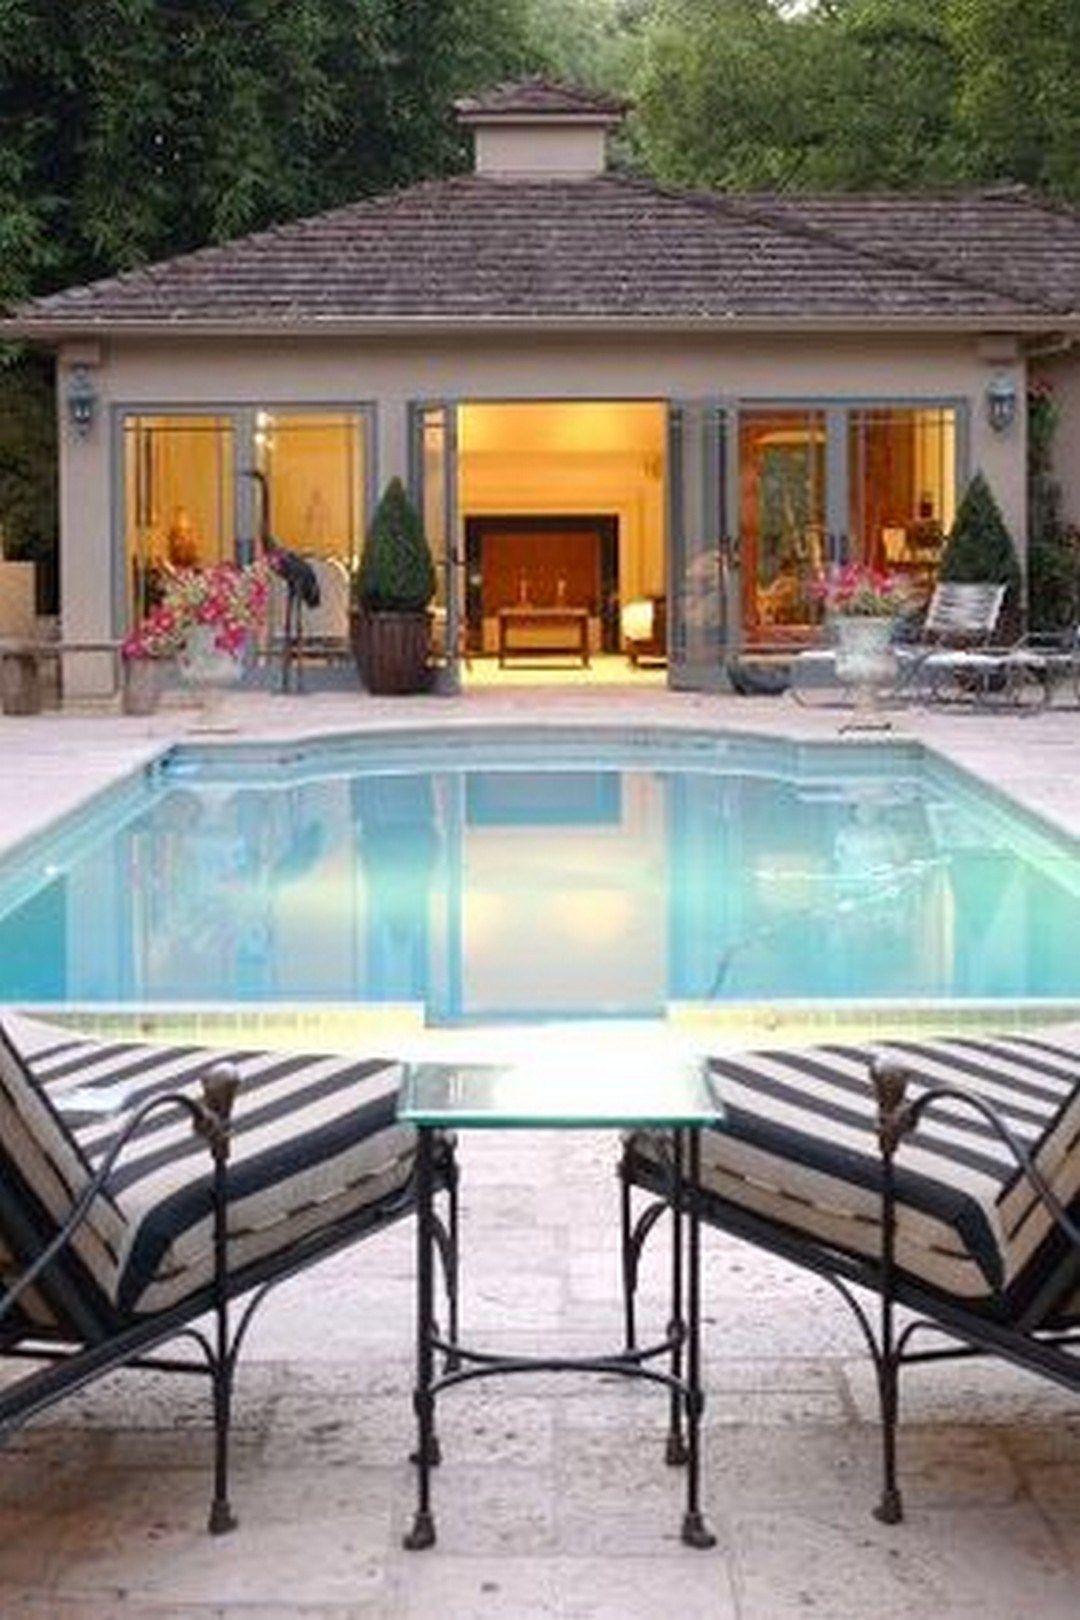 Beautiful Pool House Decorating Ideas On A Budget Small Pool